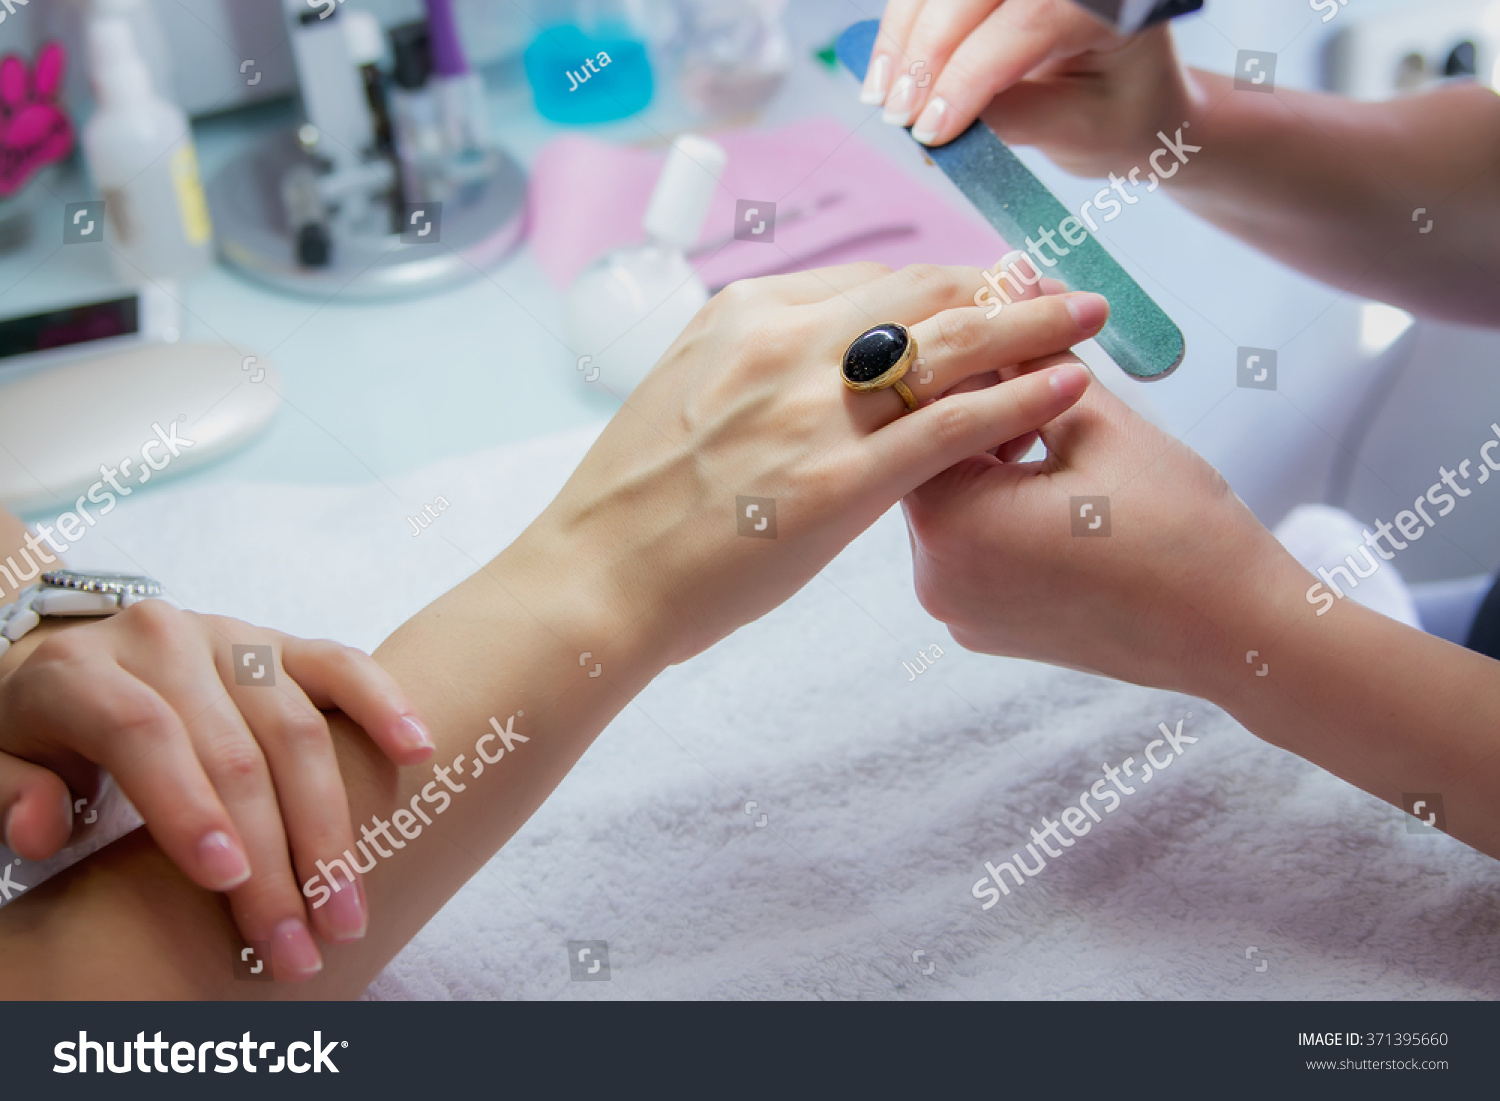 how to become a beautician in india